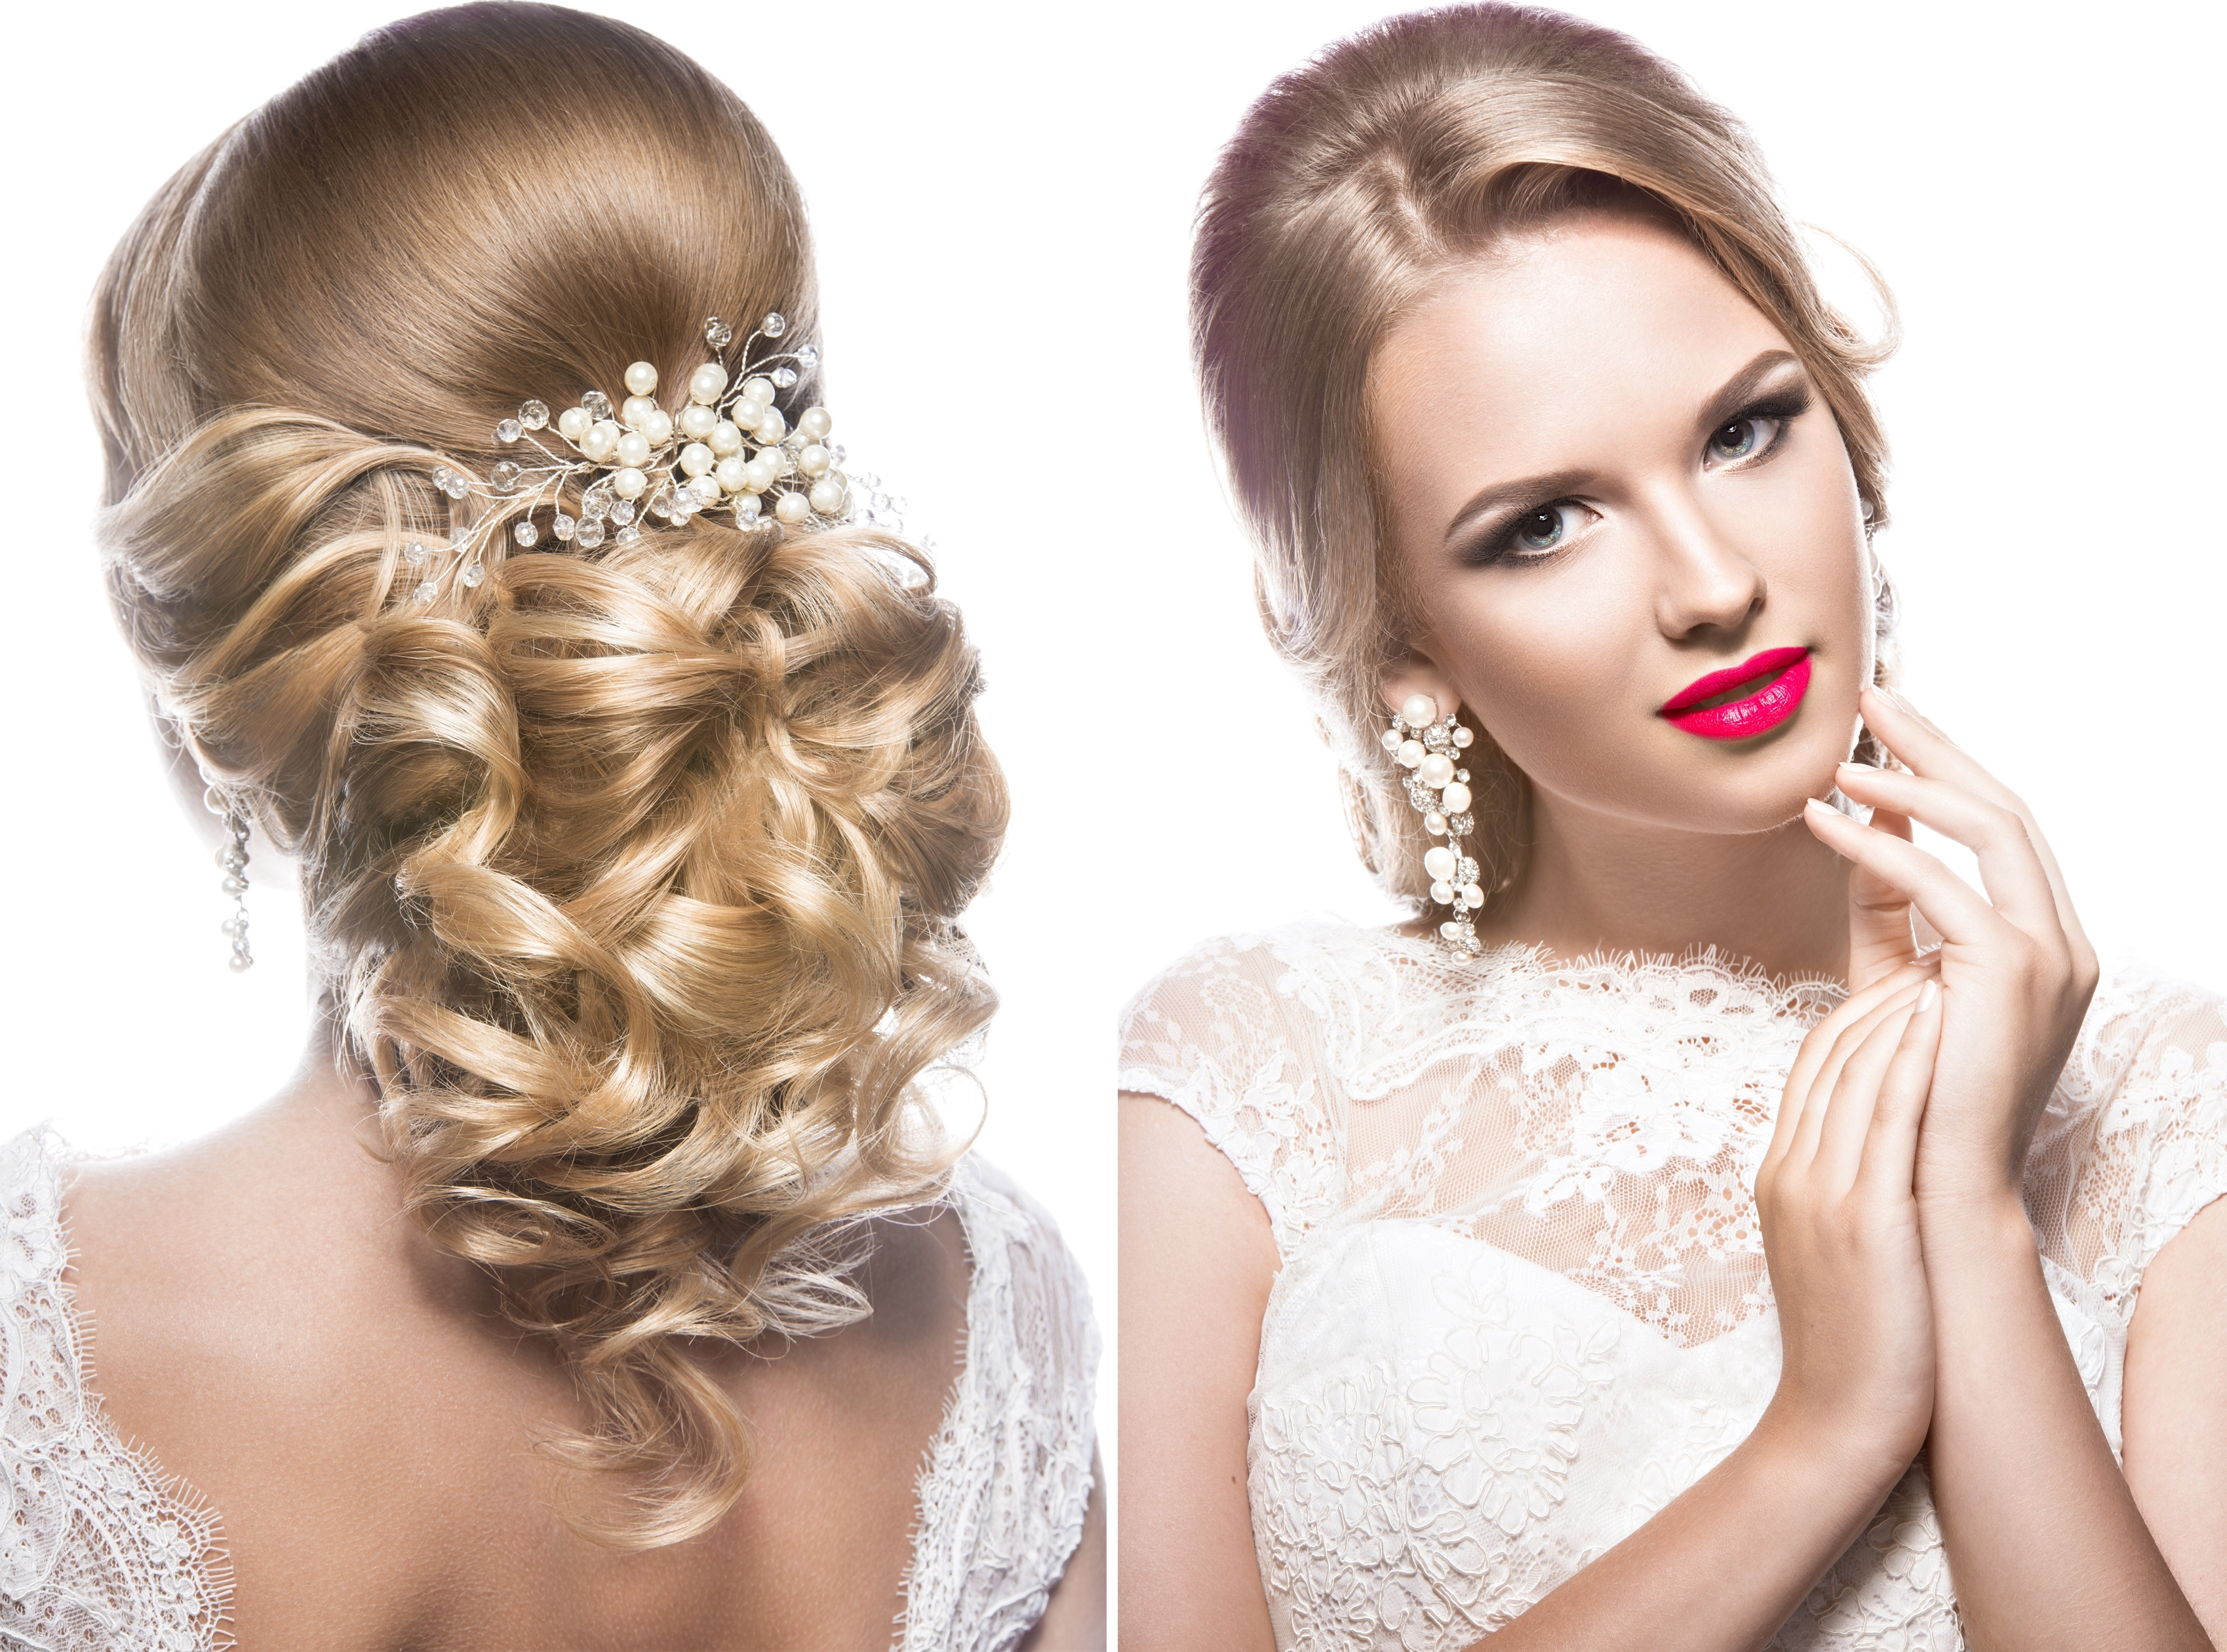 How To Get Beautiful Hair On Your Wedding Day With Hair Extensions Within Most Current Wedding Hairstyles With Hair Extensions (View 7 of 15)